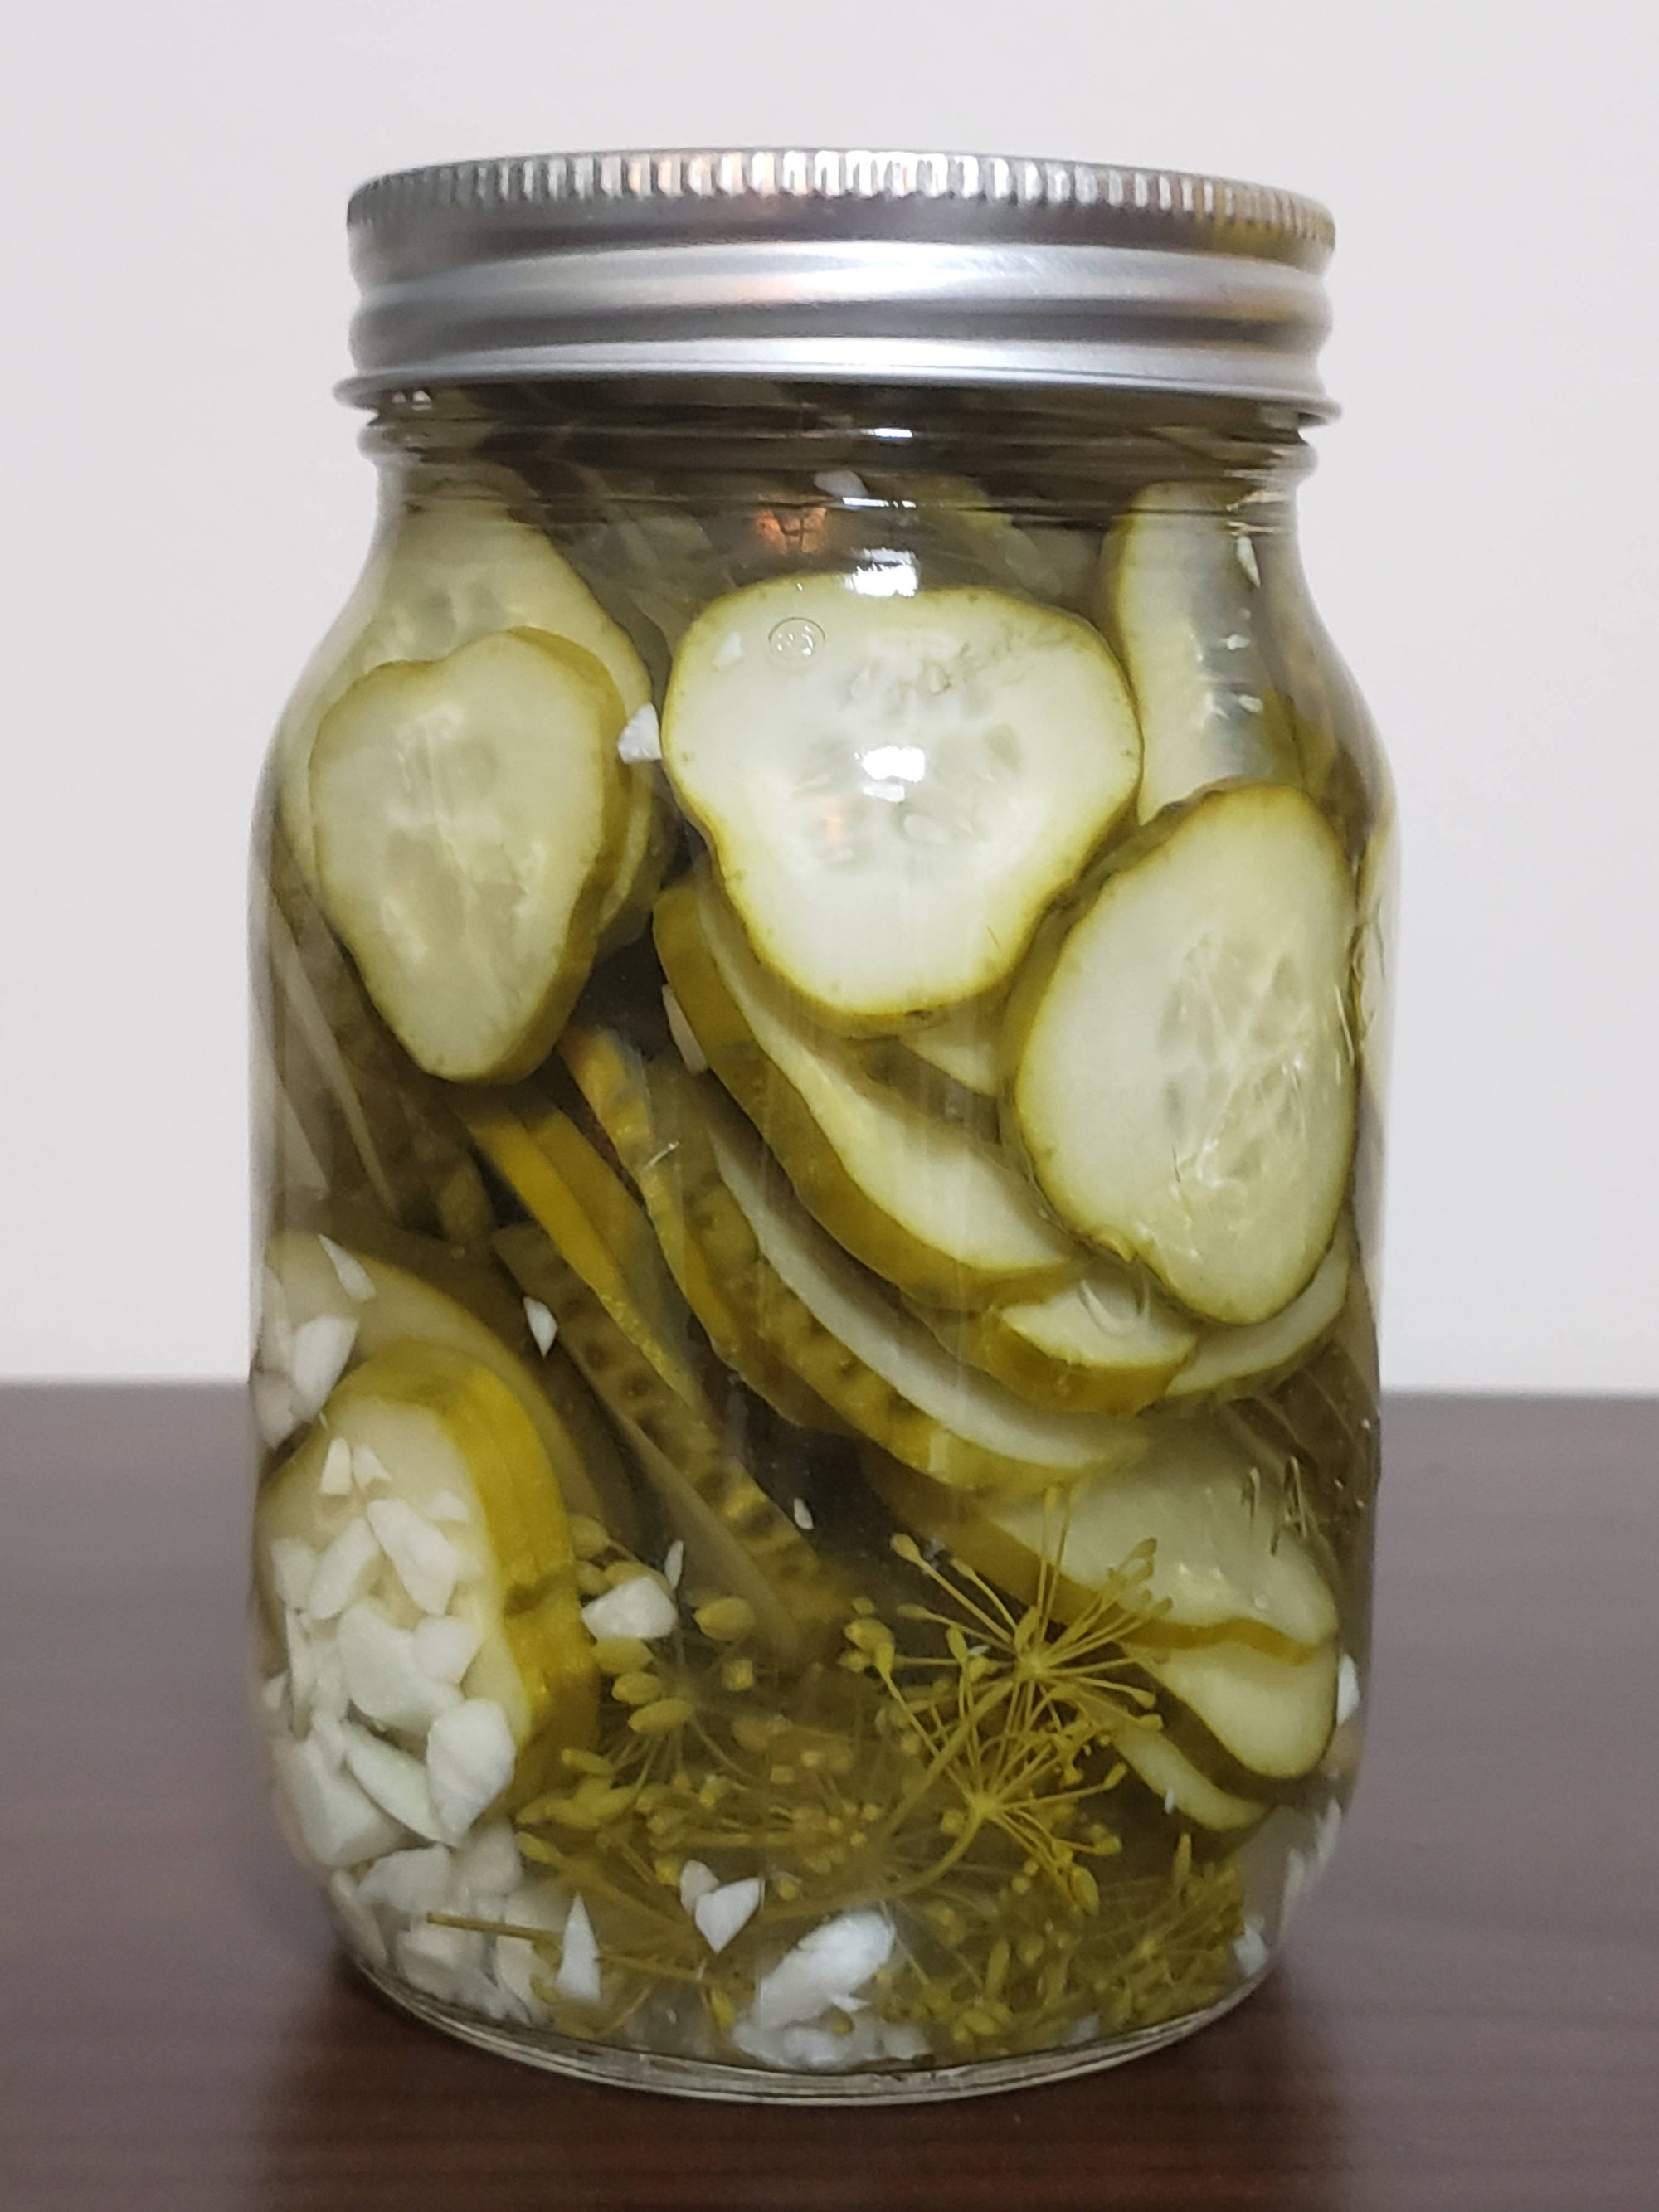 Homemade Local Sliced Zesty Garlic Dill Pickles